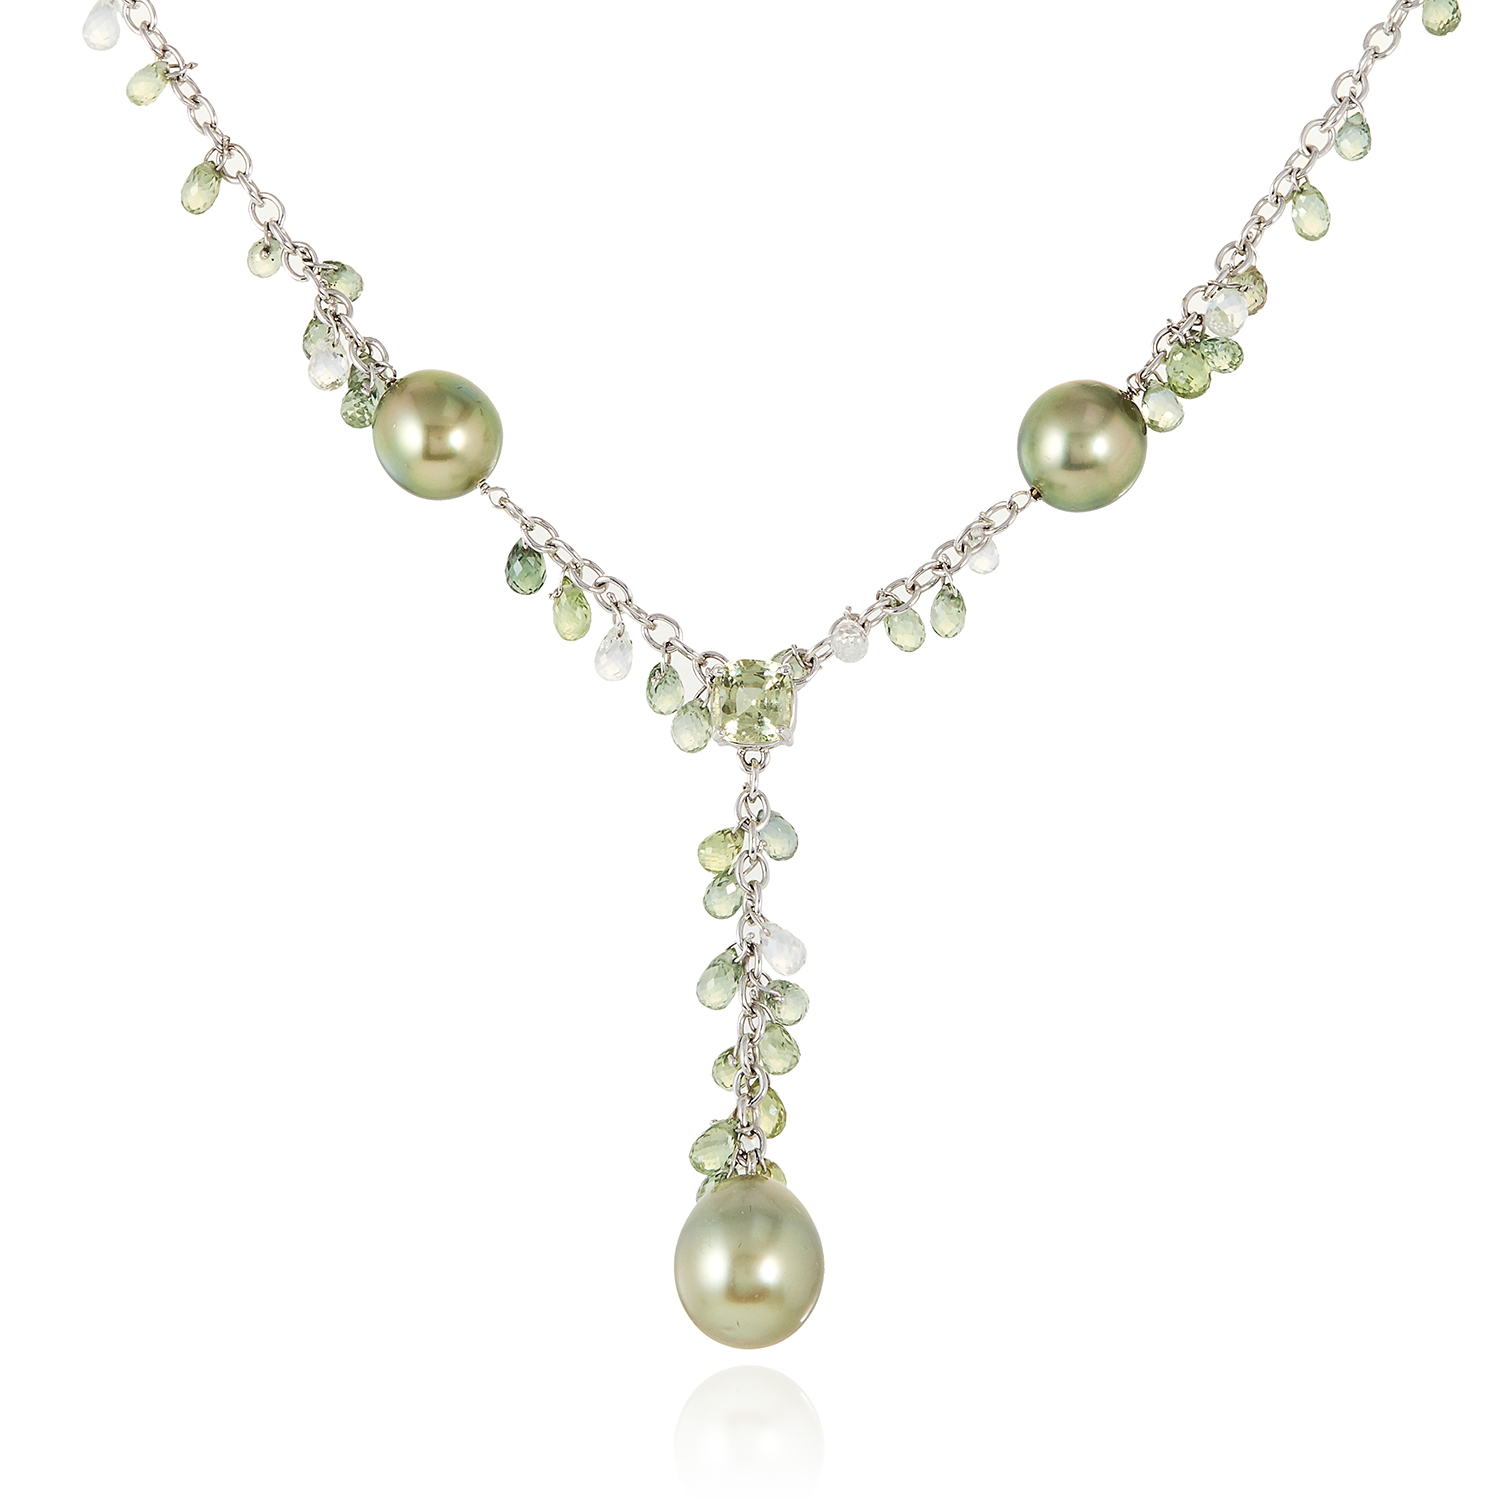 A PEARL AND SAPPHIRE NECKLACE in 18ct white gold, set with a central cushion cut sapphire of 1.44